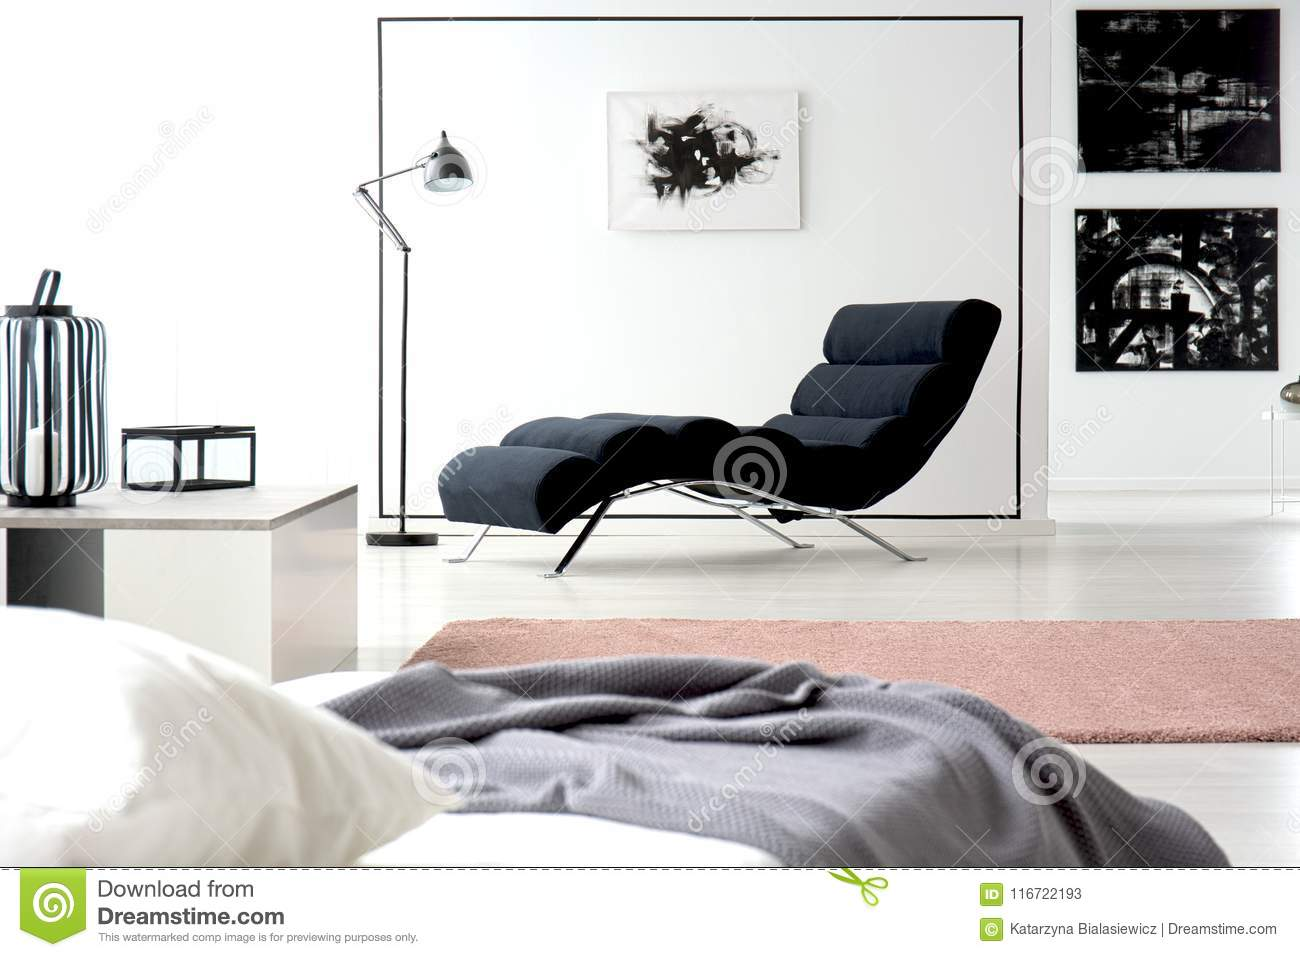 Painting and chaise lounge